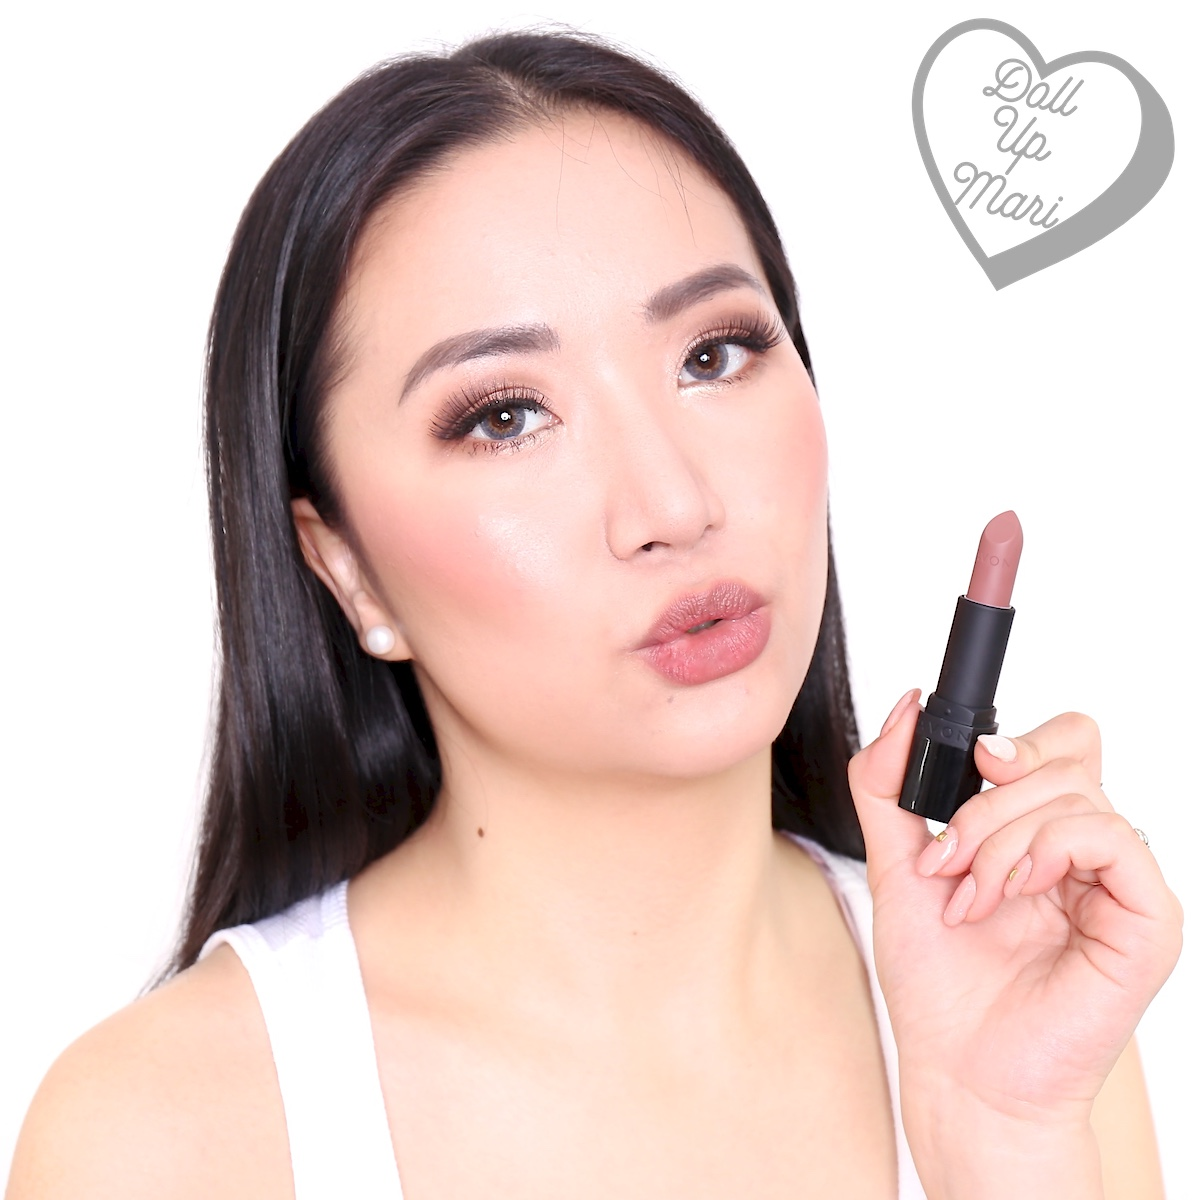 AVON Perfectly Matte Nudes Lipstick Collection | Doll Up Mari